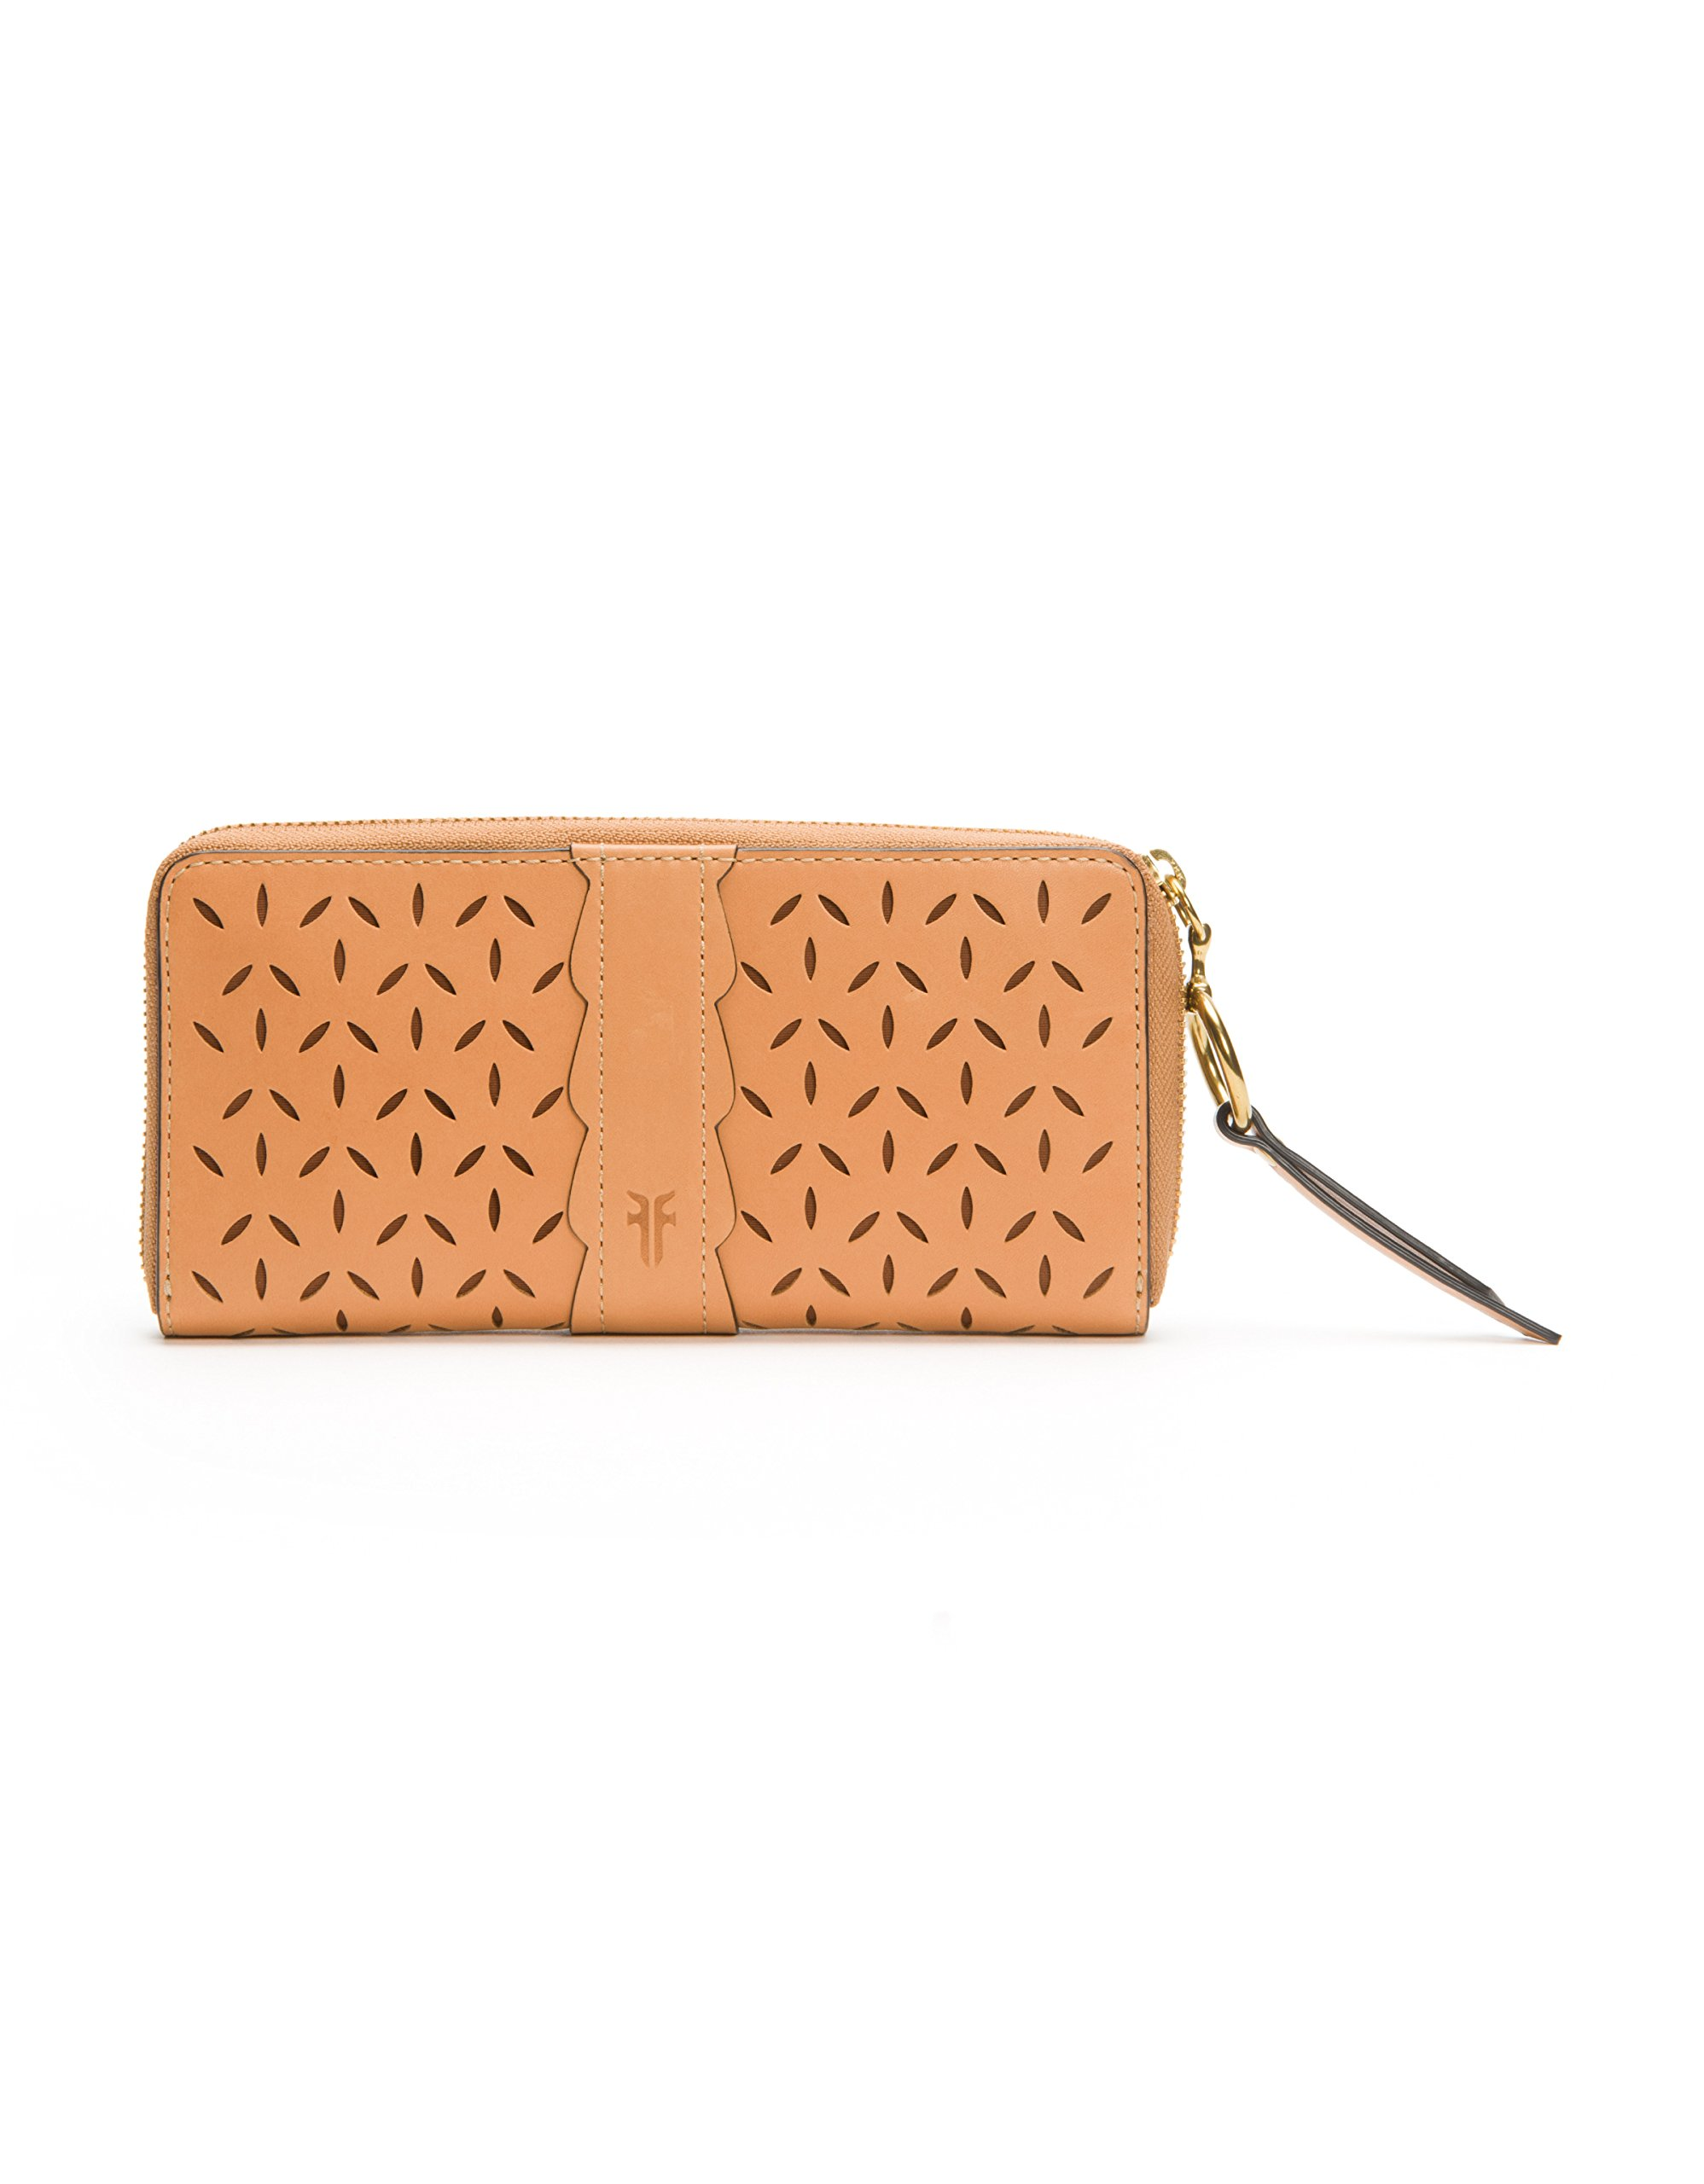 Ilana Perf Zip Around Wallet Oiled Veg Wallet, Light Tan, One Size